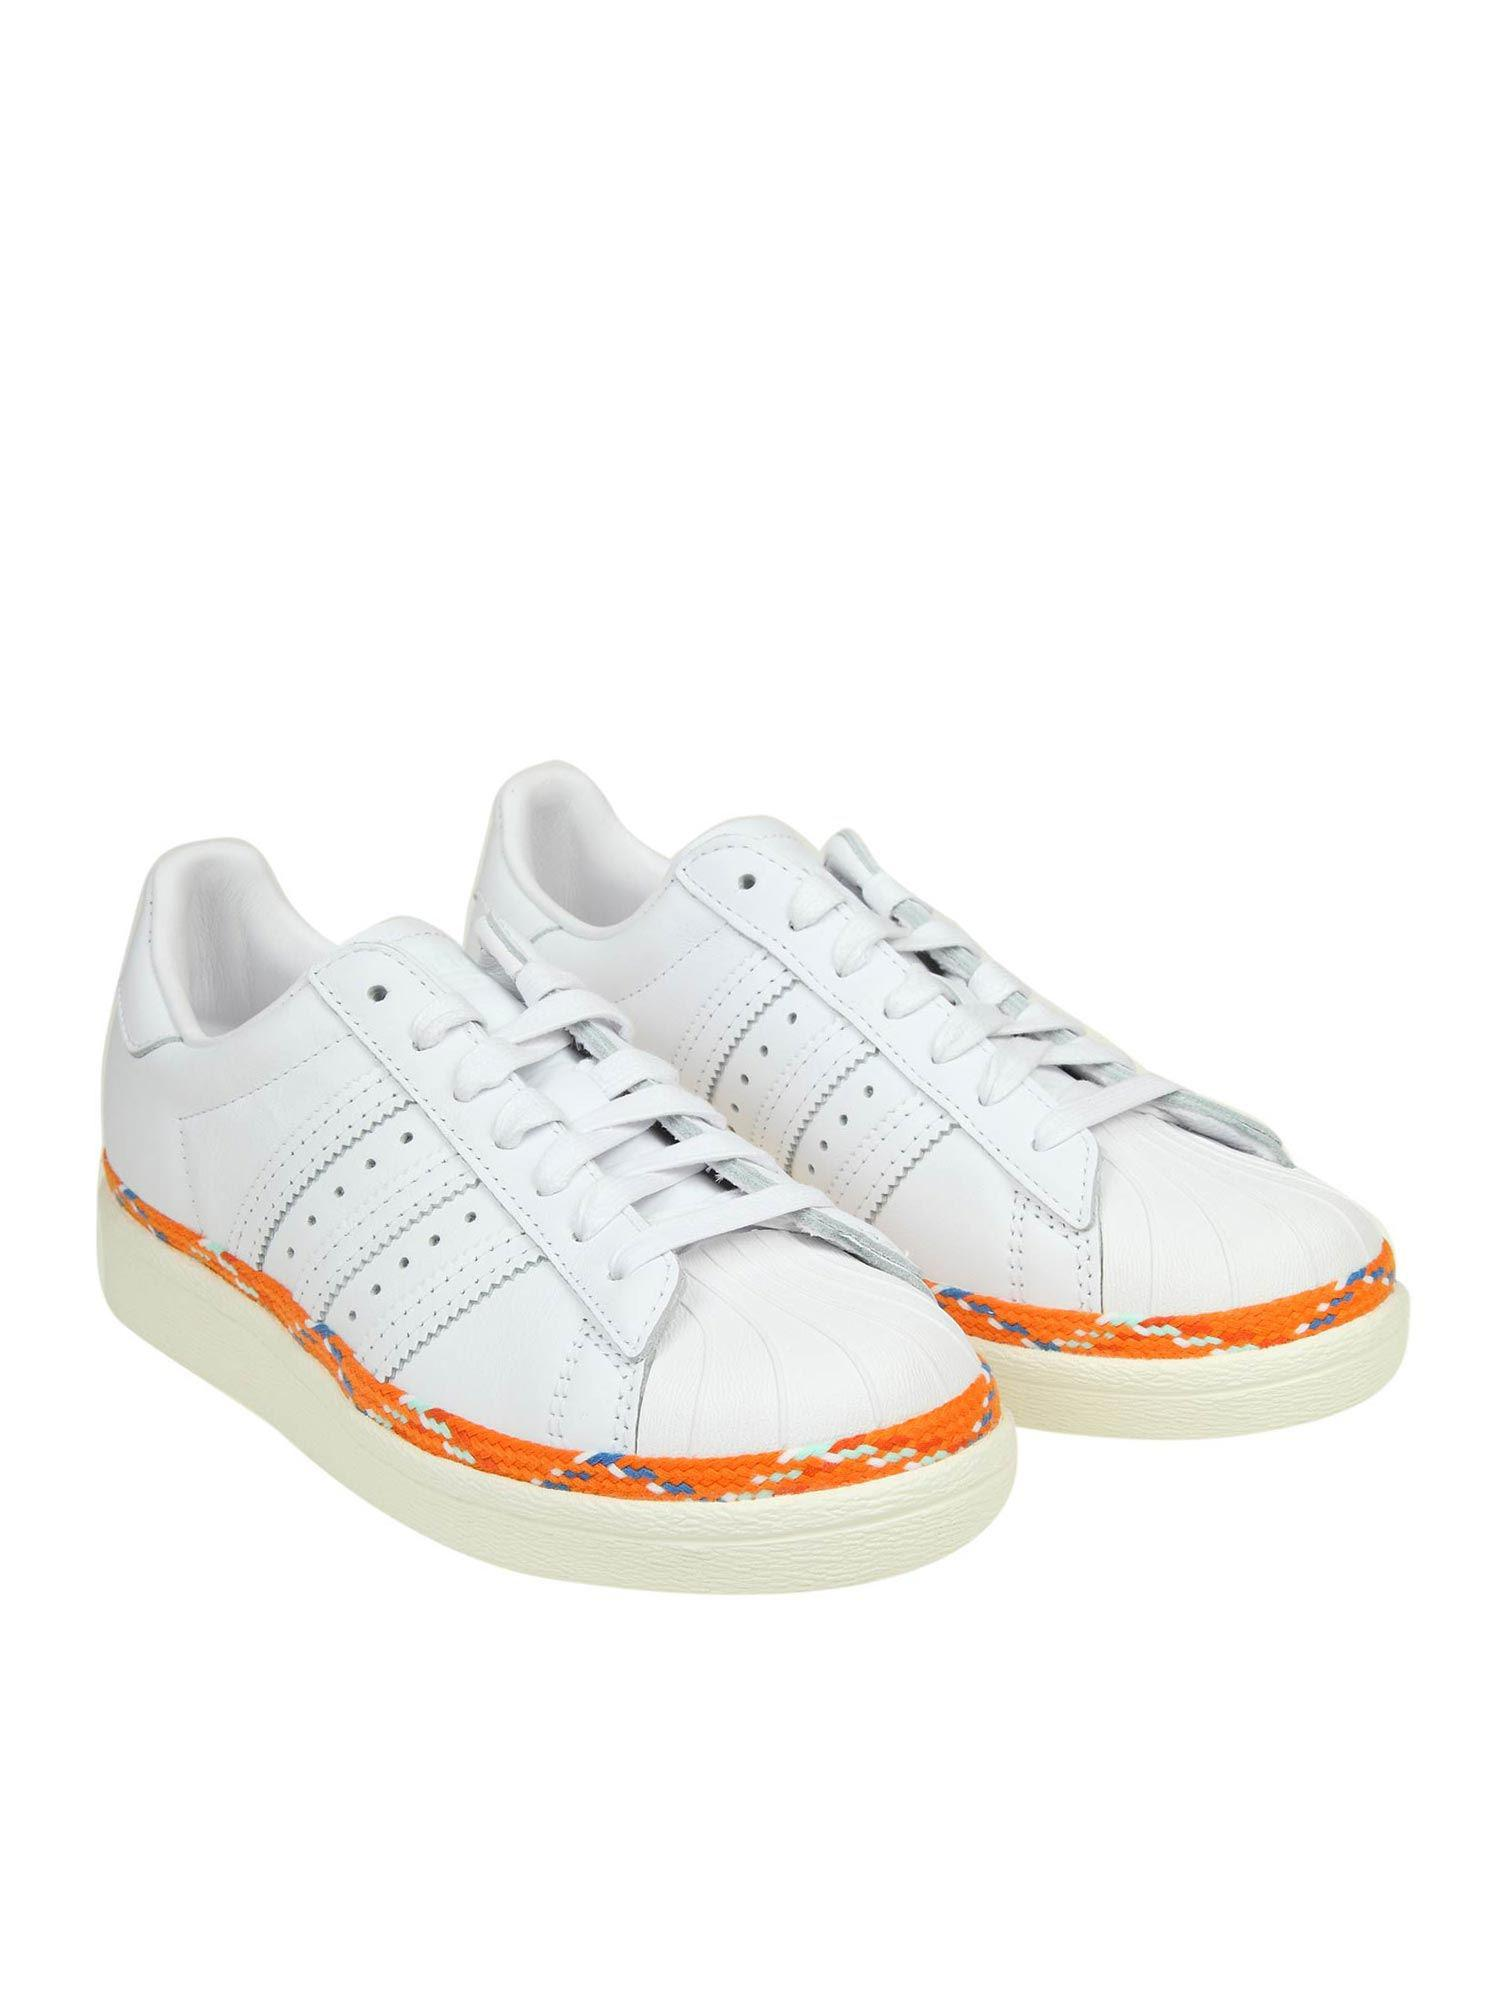 06faa54e035b Lyst - adidas Originals Superstar 80s New Bold Sneakers in White